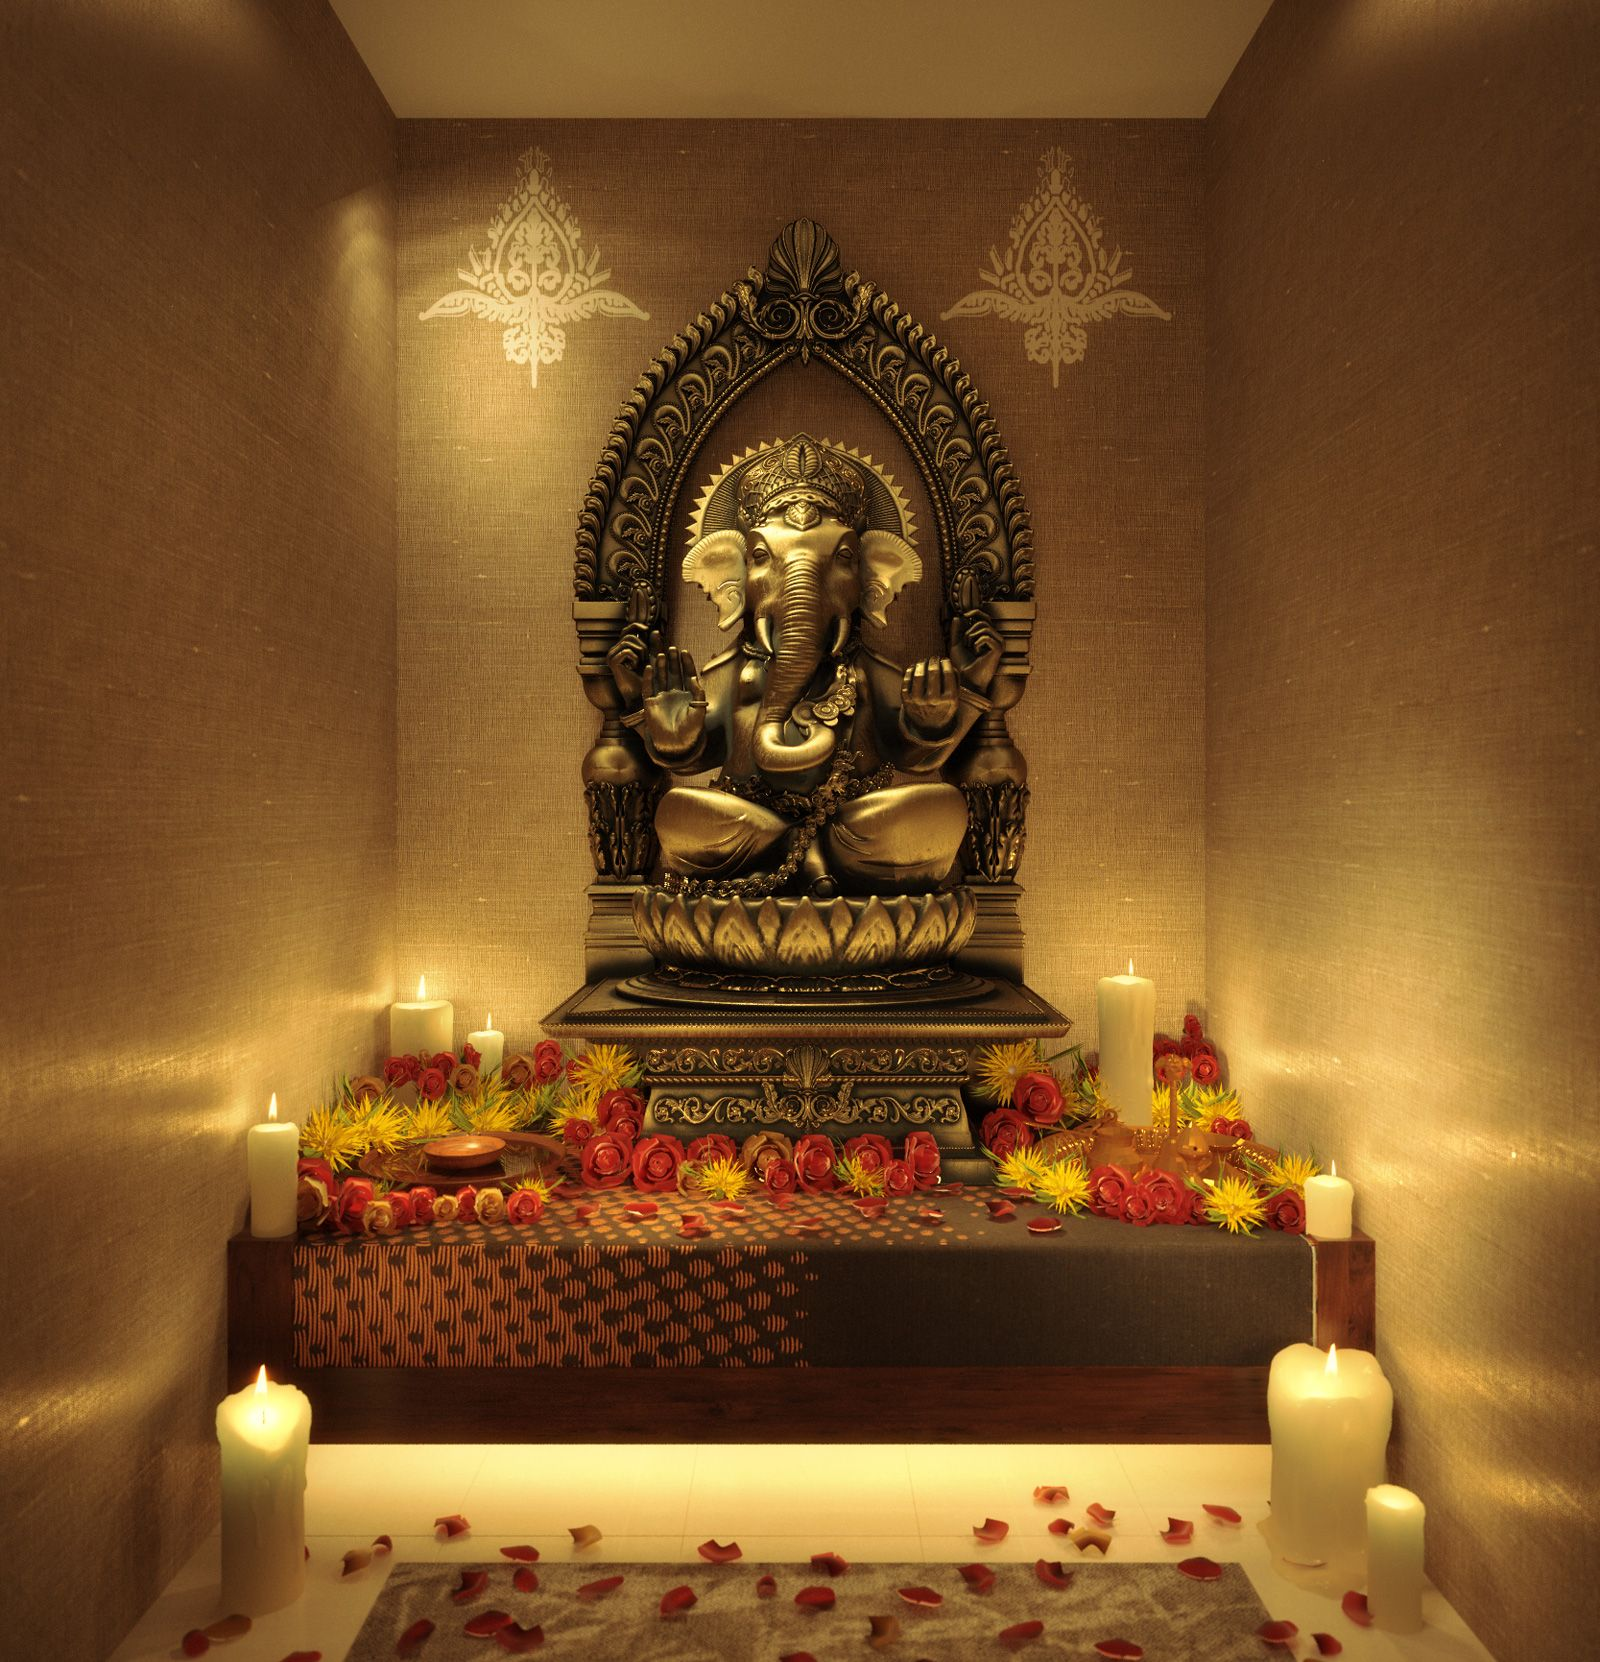 20 Mandir Designs For Indian Homes: Puja Room- A Place To Withdraw From The World For Prayer